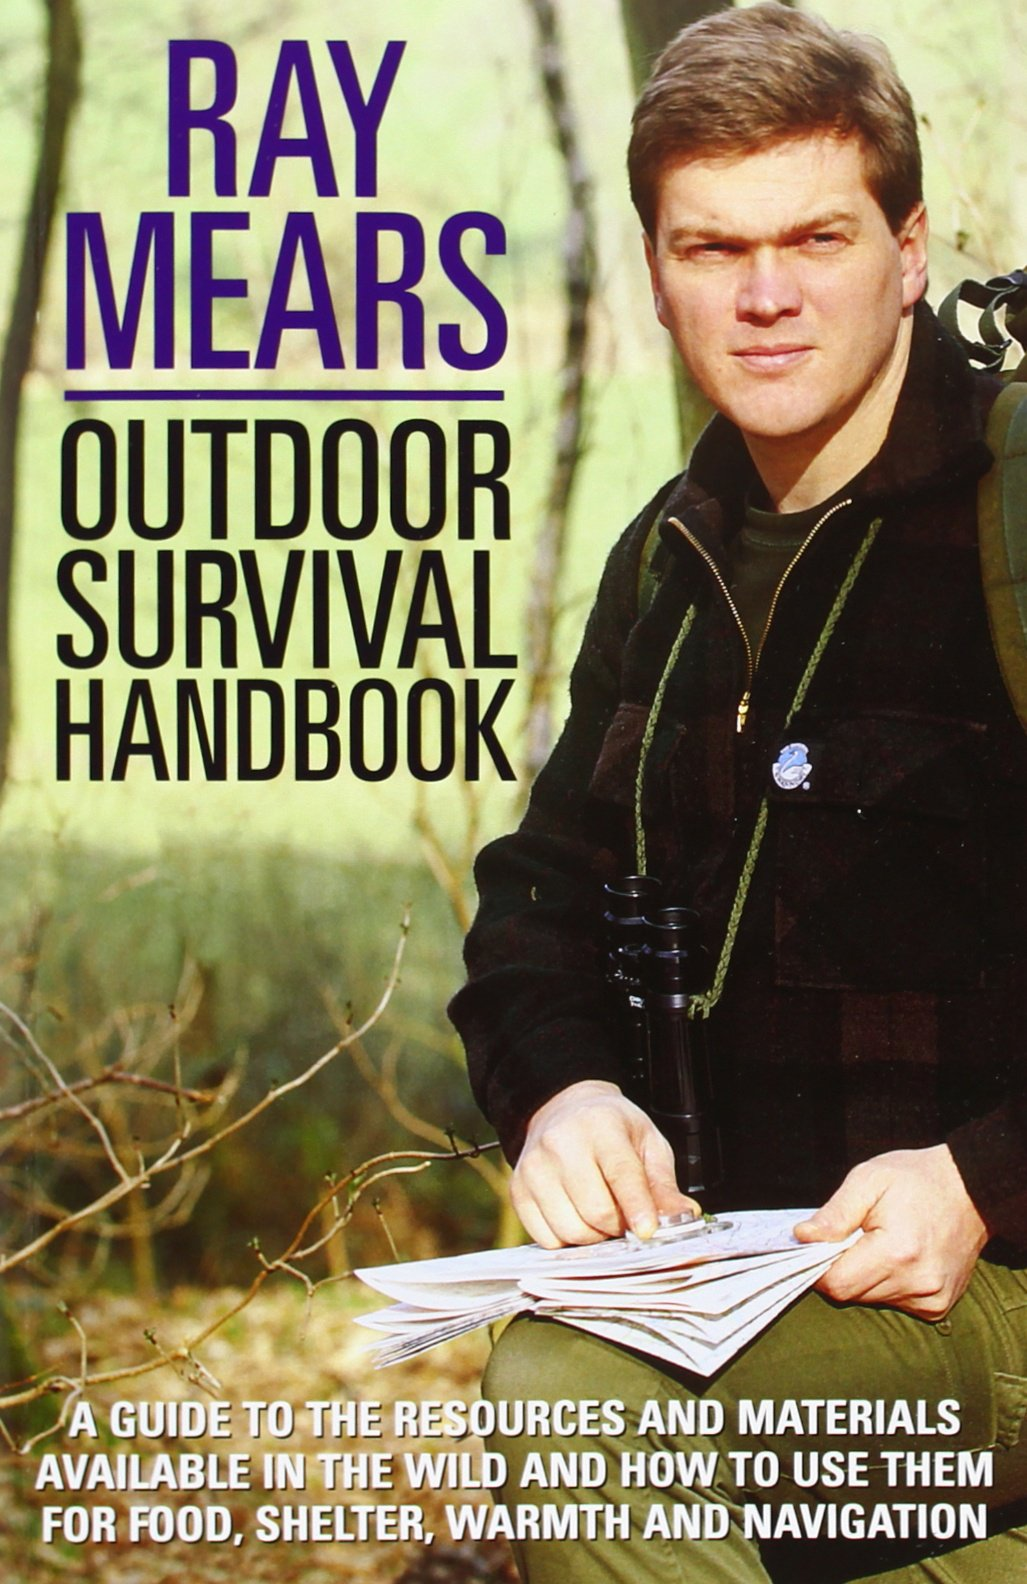 Ray Mears Outdoor Survival Handbook  A Guide To The Materials In The Wild And How To Use Them For Food Warmth Shelter And Navigation  The Classic Indispensable Guide To Surviving The Outdoors